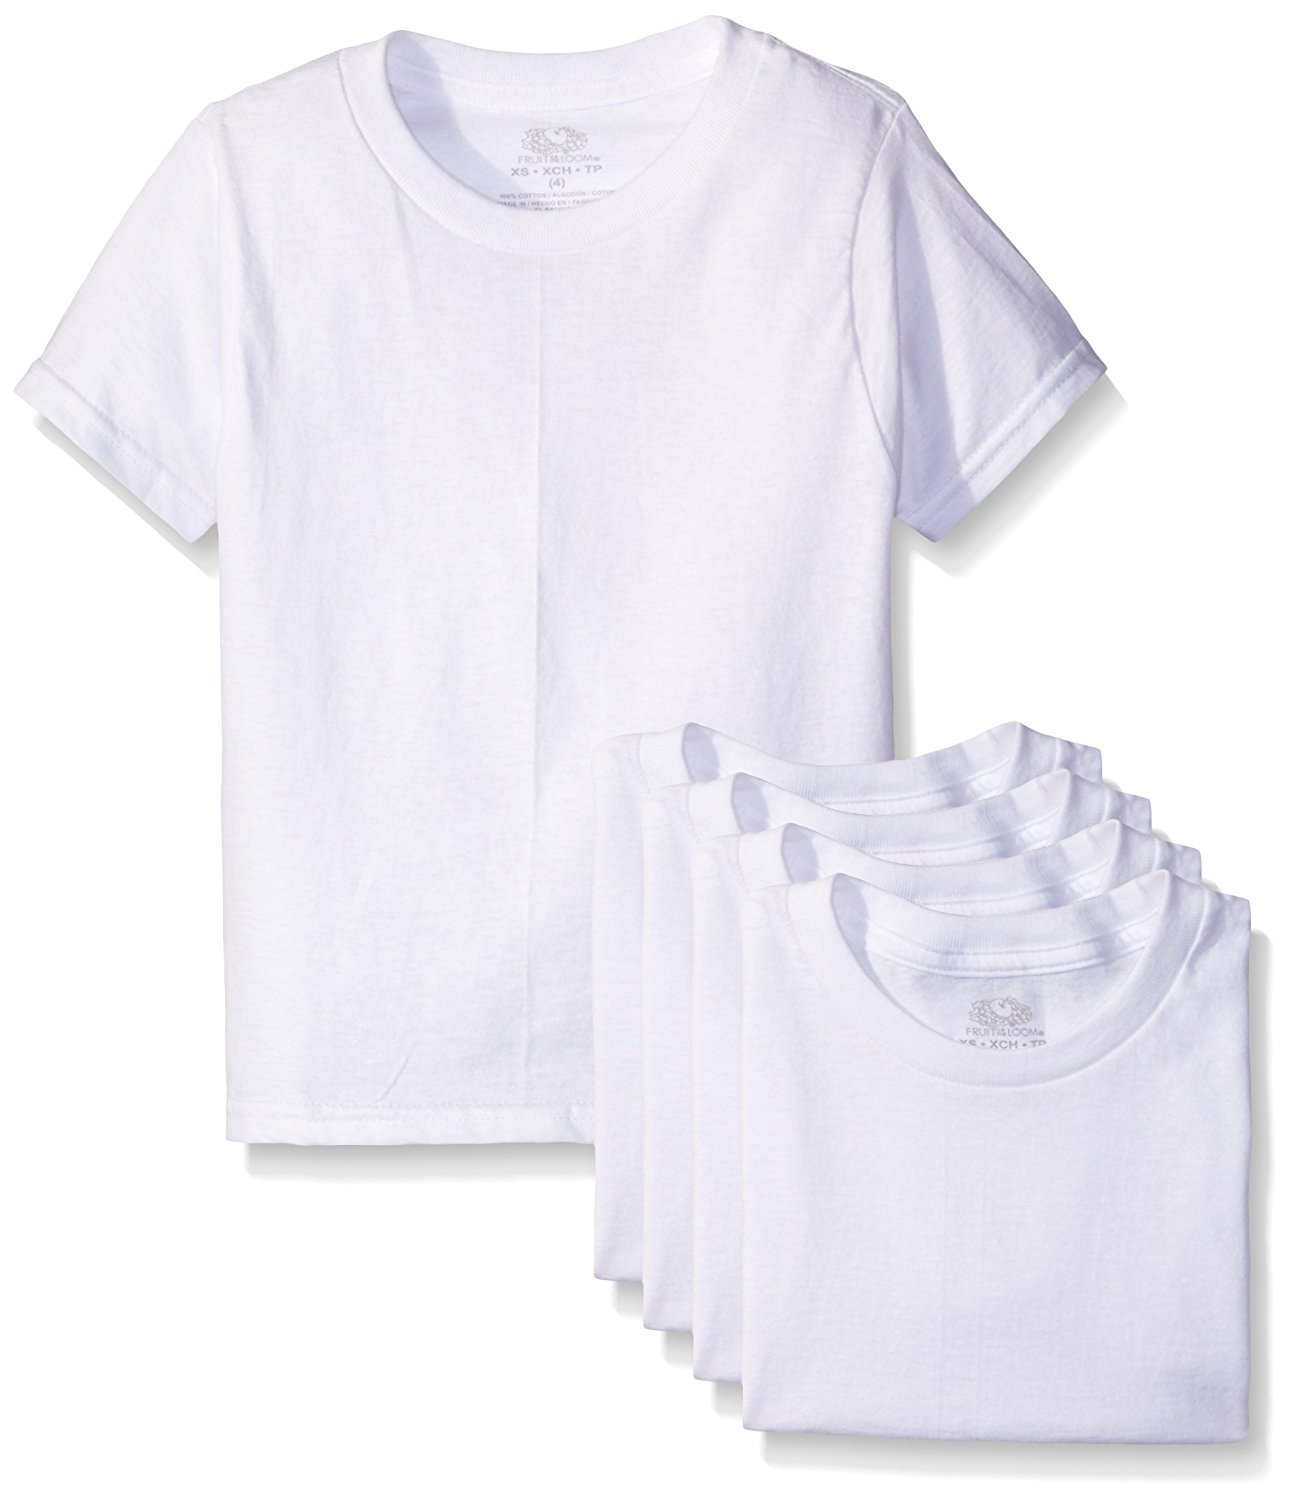 byFruit of the Loom Fruit of The Loom Little Boys' Crew Tee Five-Pack (Pack of 5) (White, 4T/5T)